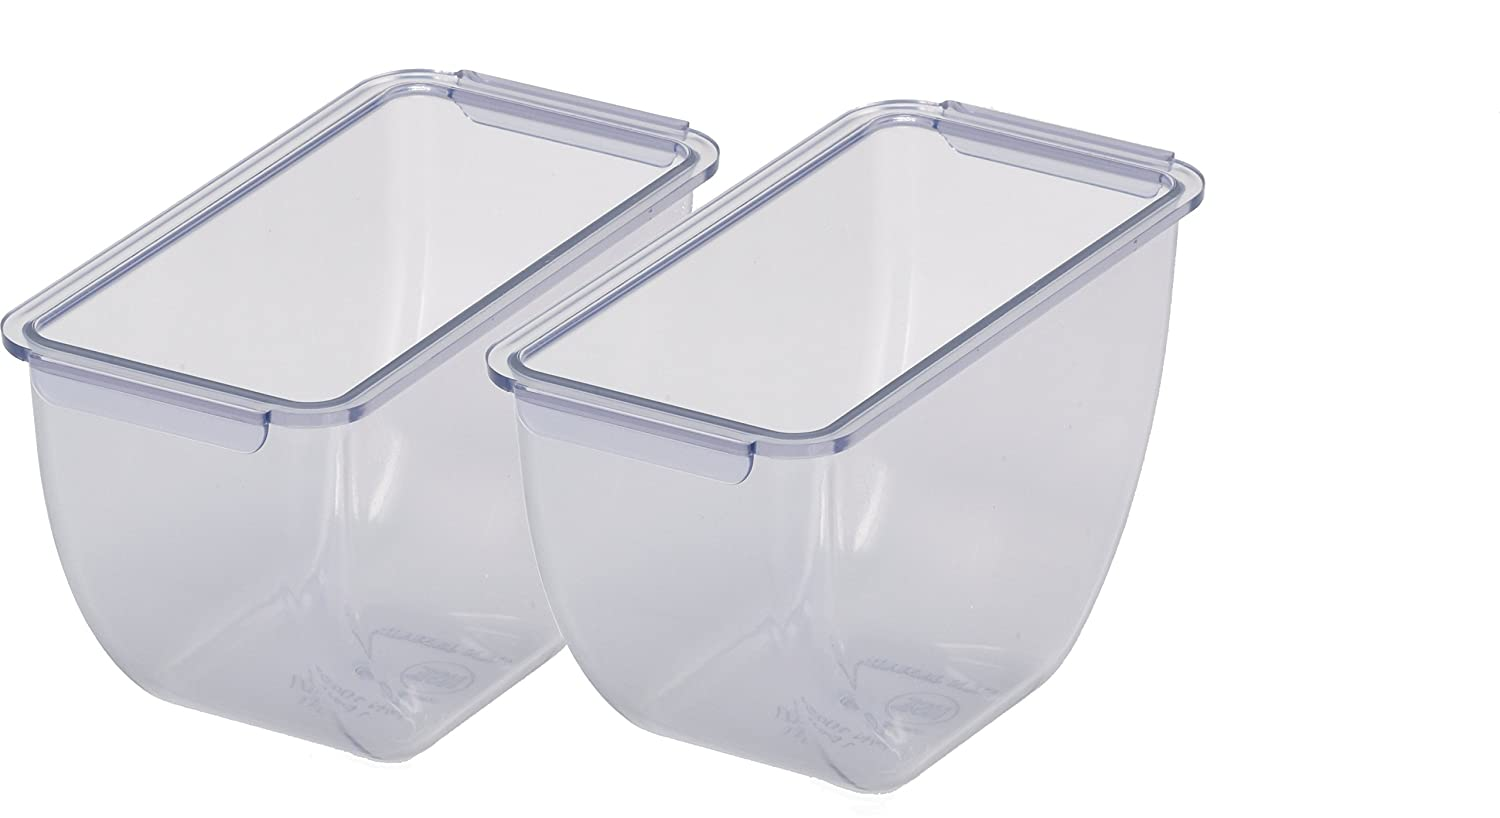 Pack of 6 San Jamar BD102 1.5pt Dome Standard Chillable Tray